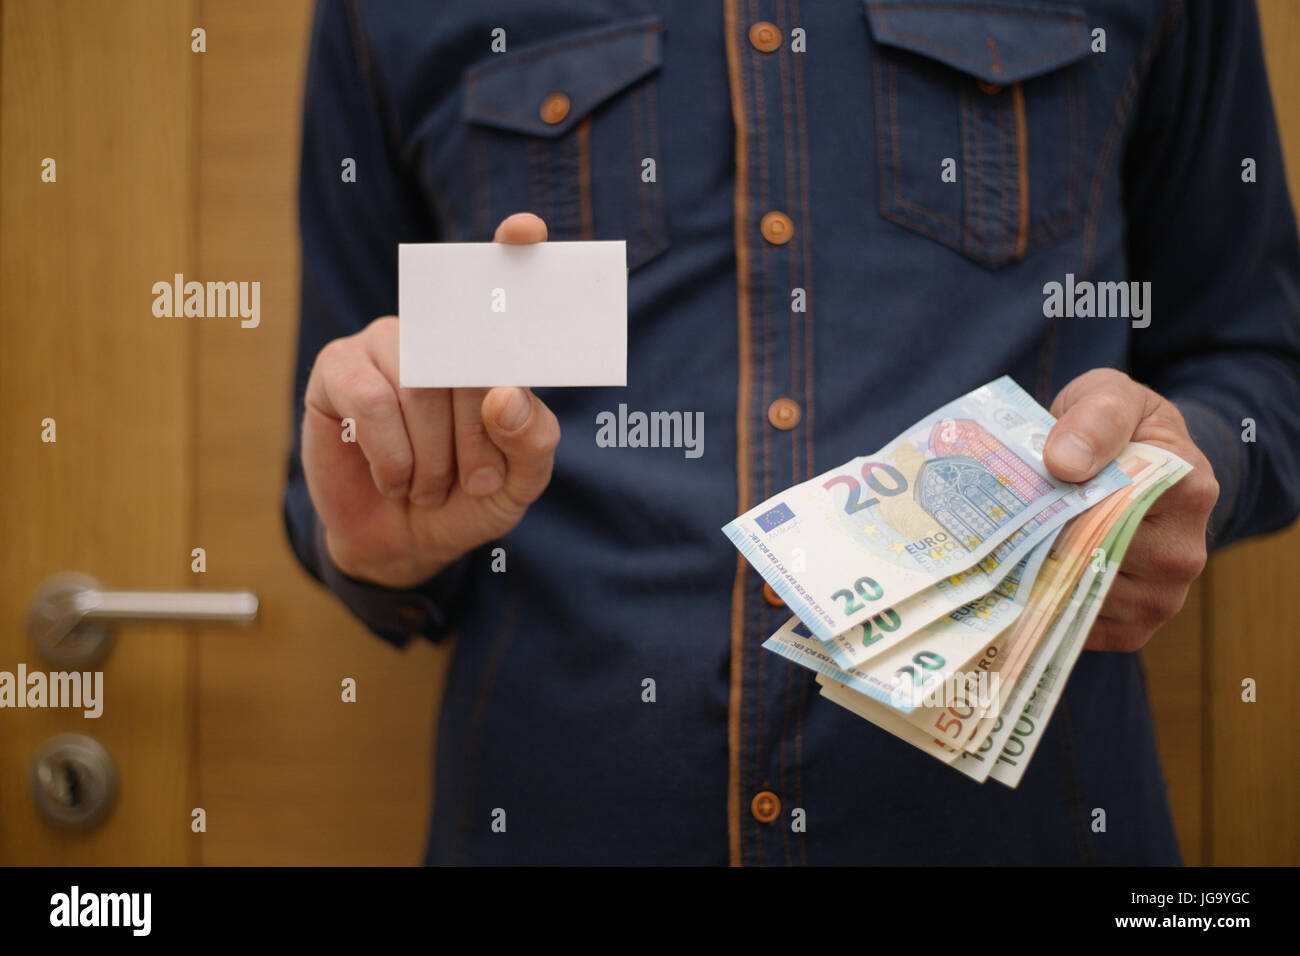 Businessman holding a bank card, and in the other hand holding the money in cash, finance, businessman - Stock Image